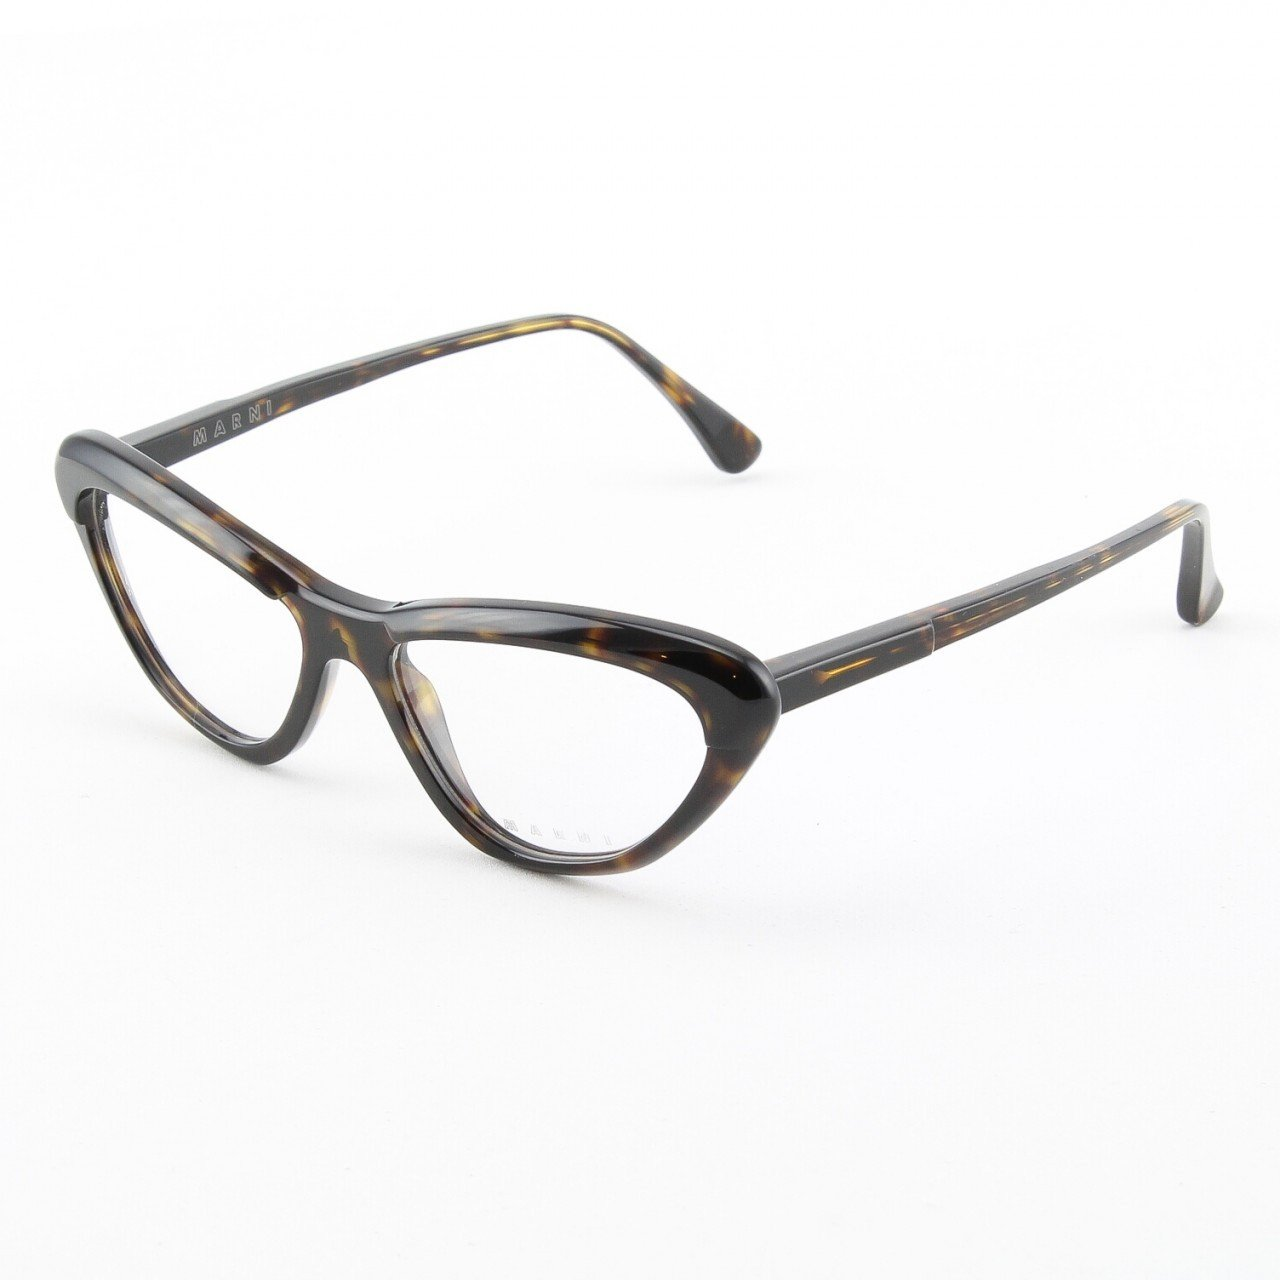 Marni MA675S Eyeglasses Col. 08 Dark Black and Brown Tortoise Frame with Clear Lenses